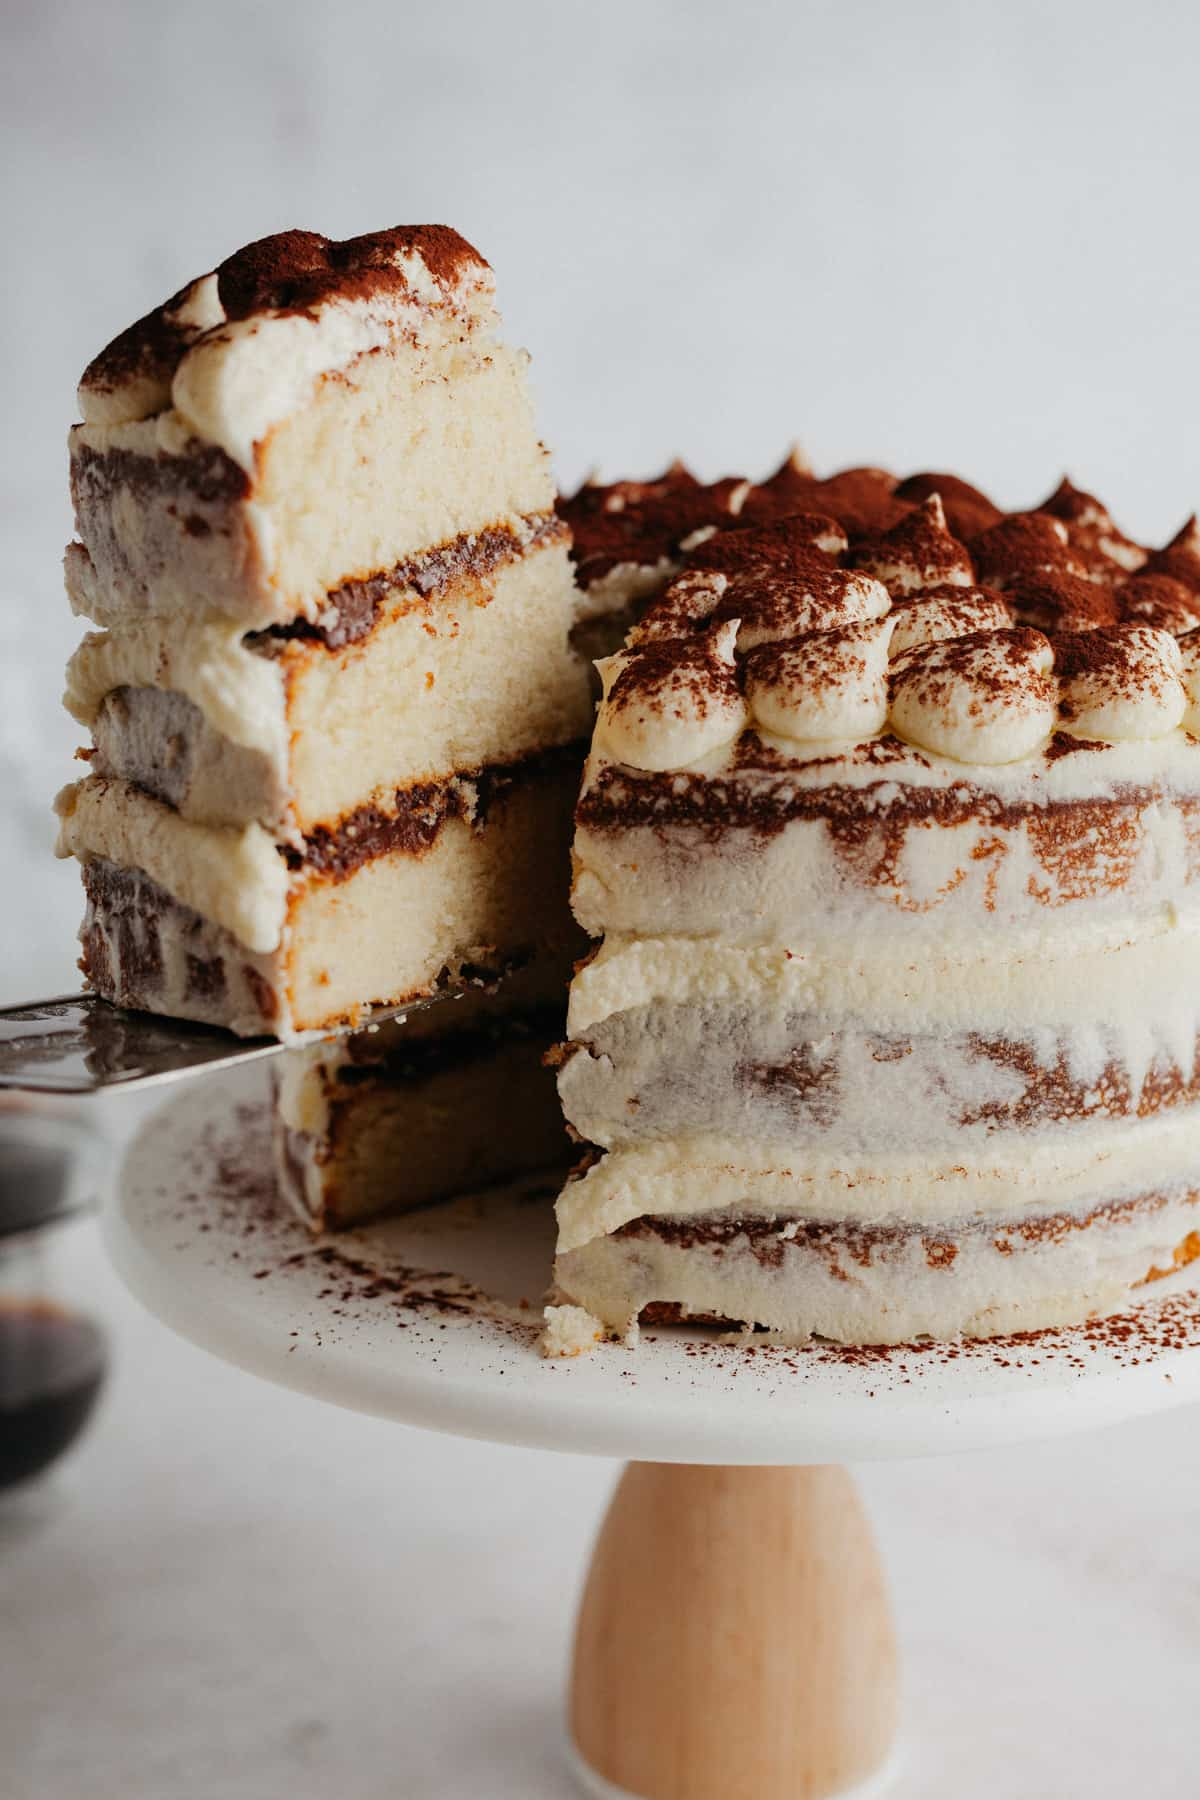 Tiramisu layer cake on a cake stand, one slice is being lifted out